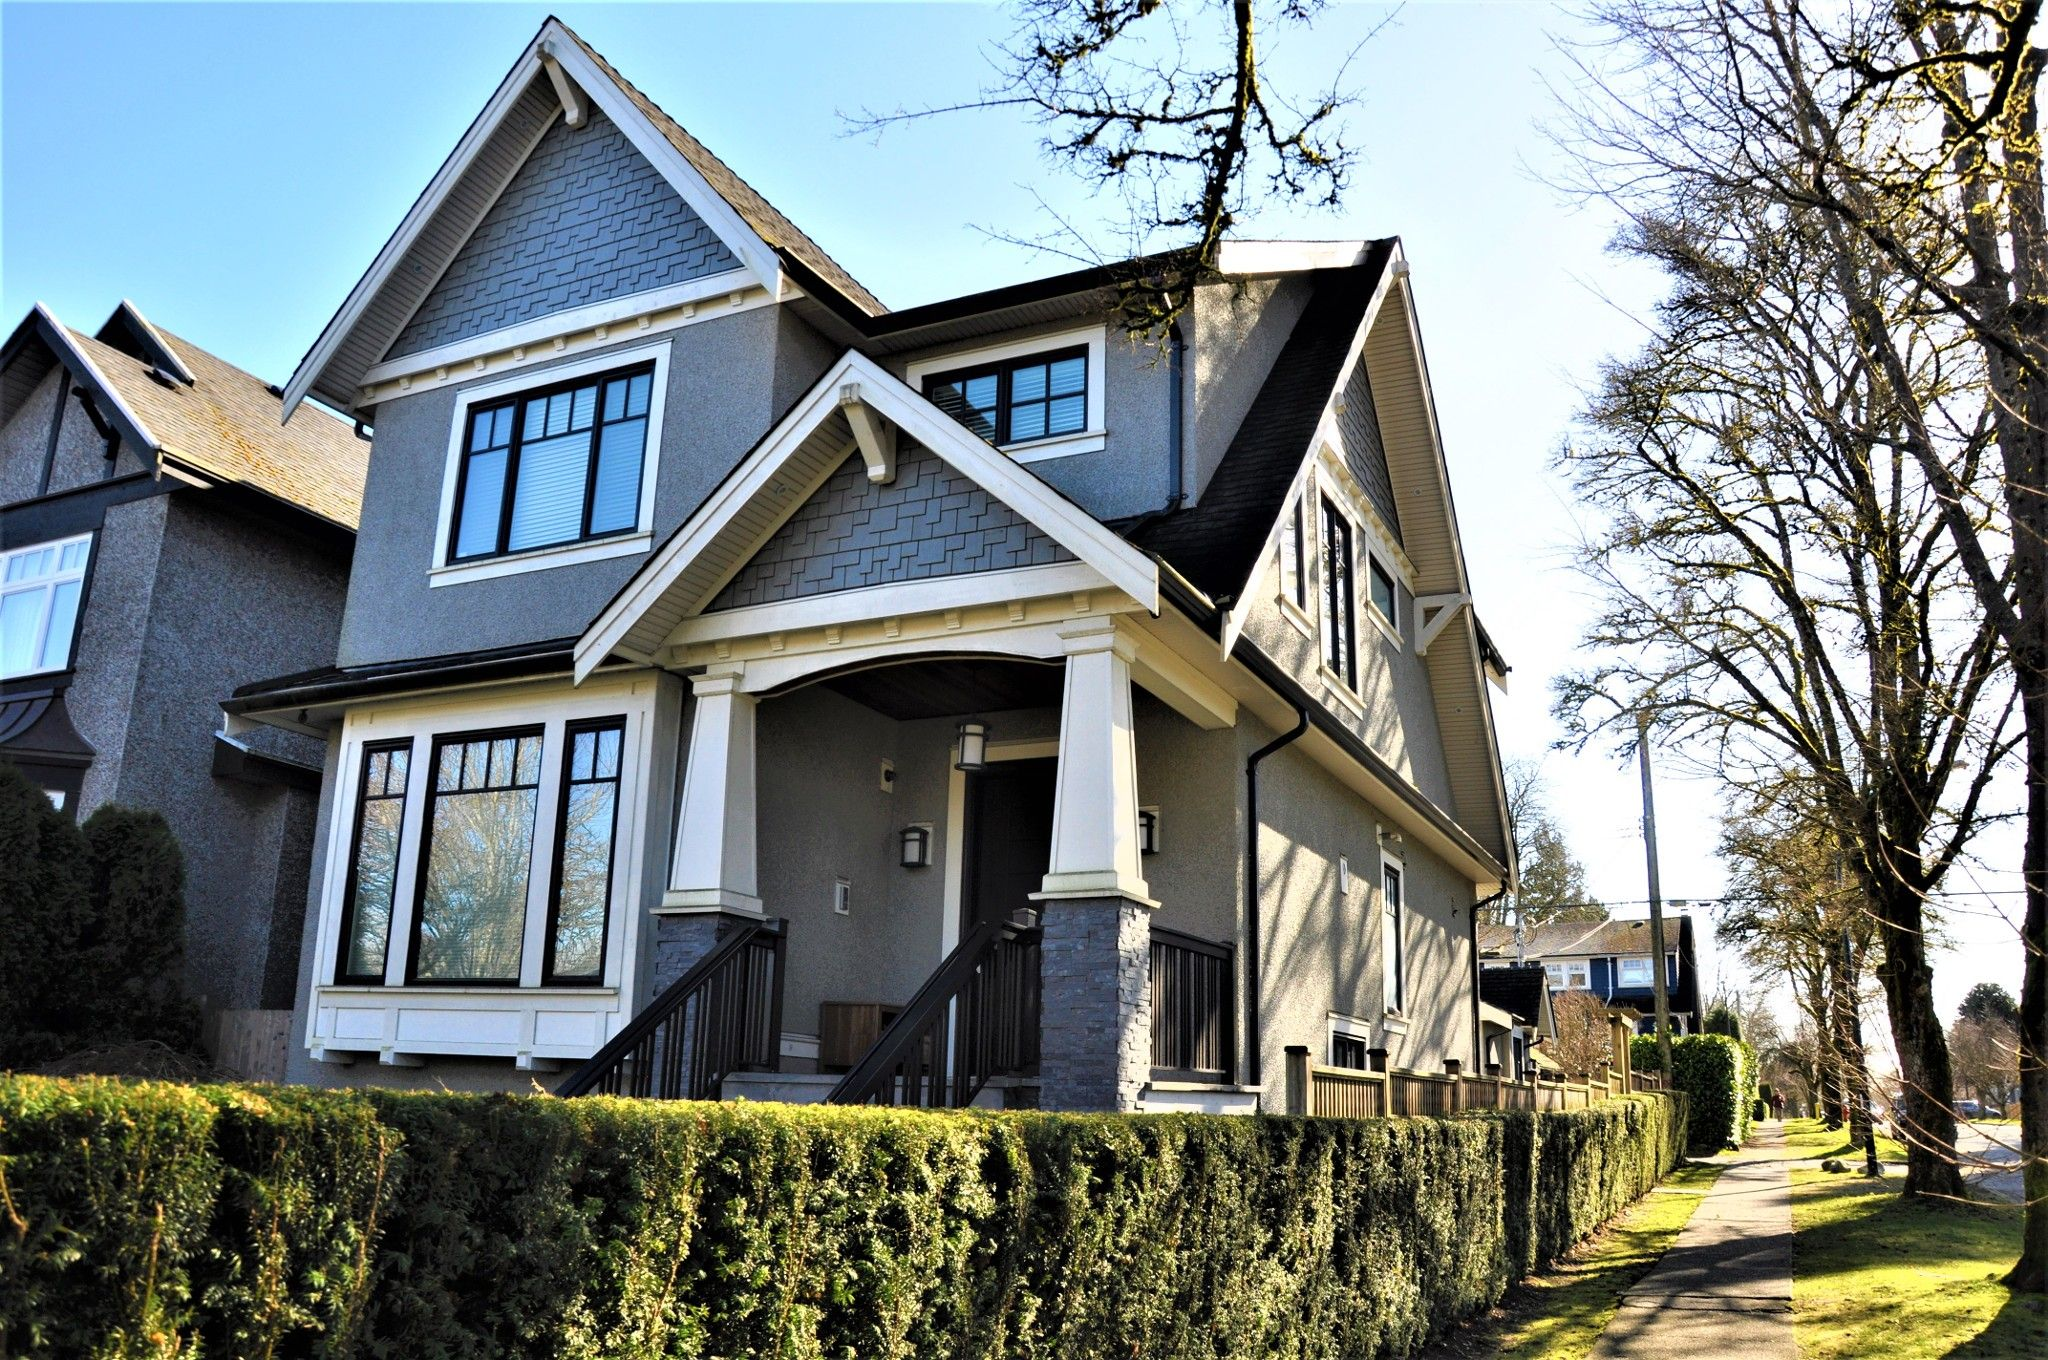 Main Photo: 3896 West 21st Ave in Vancouver: Dunbar House for sale (Vancouver West)